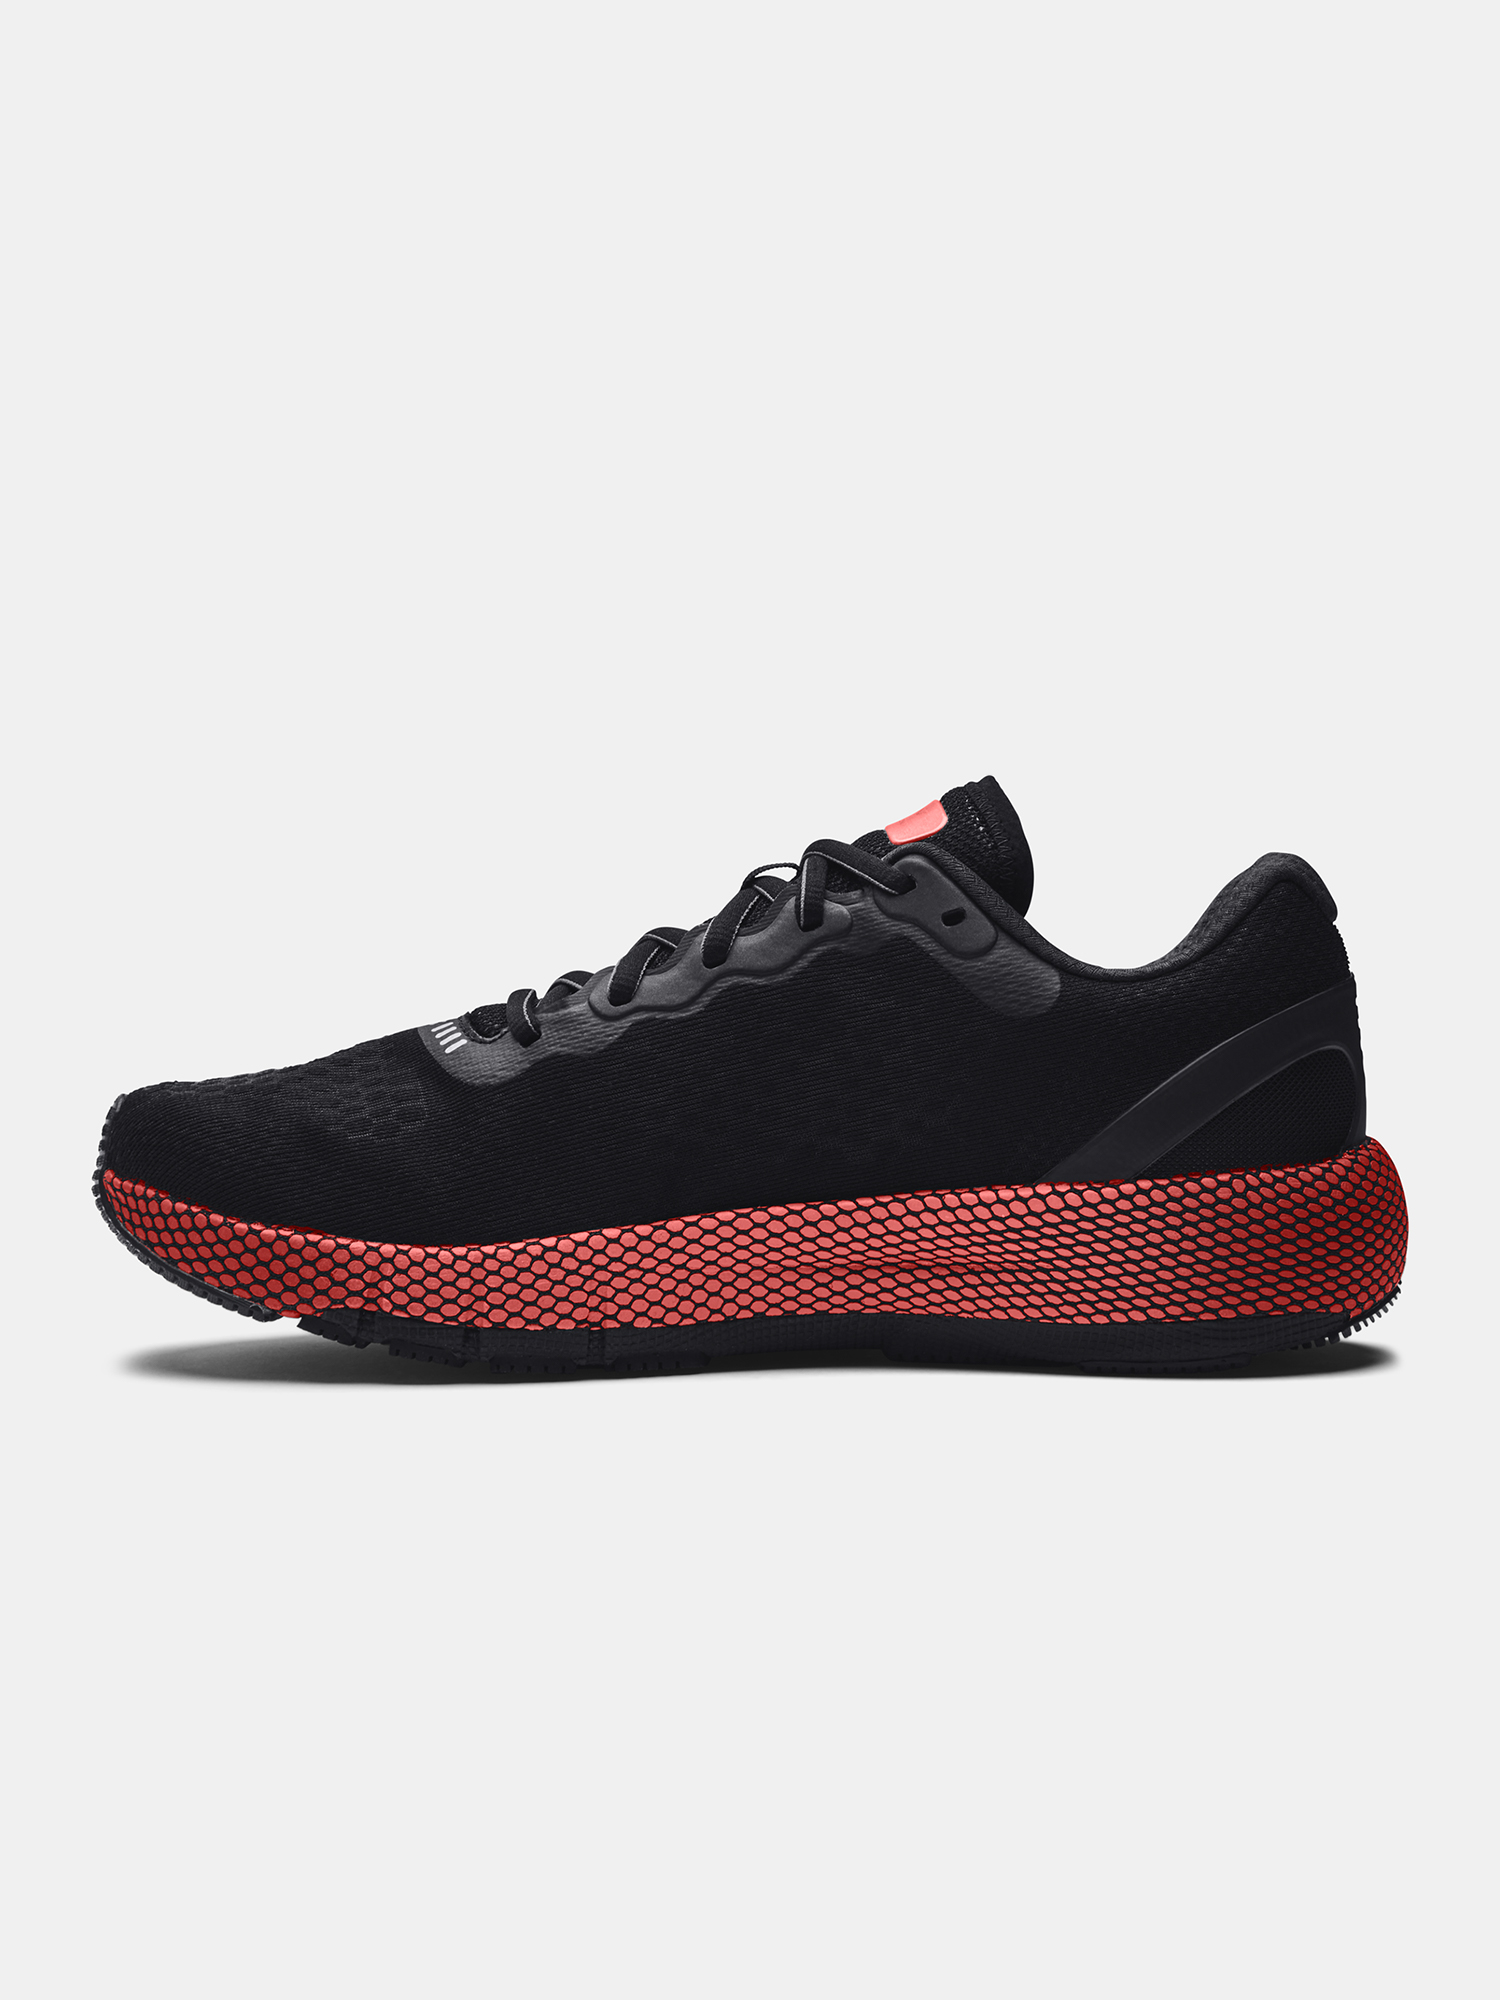 Boty Under Armour HOVR Machina 2 CLRSHFT-BLK (2)